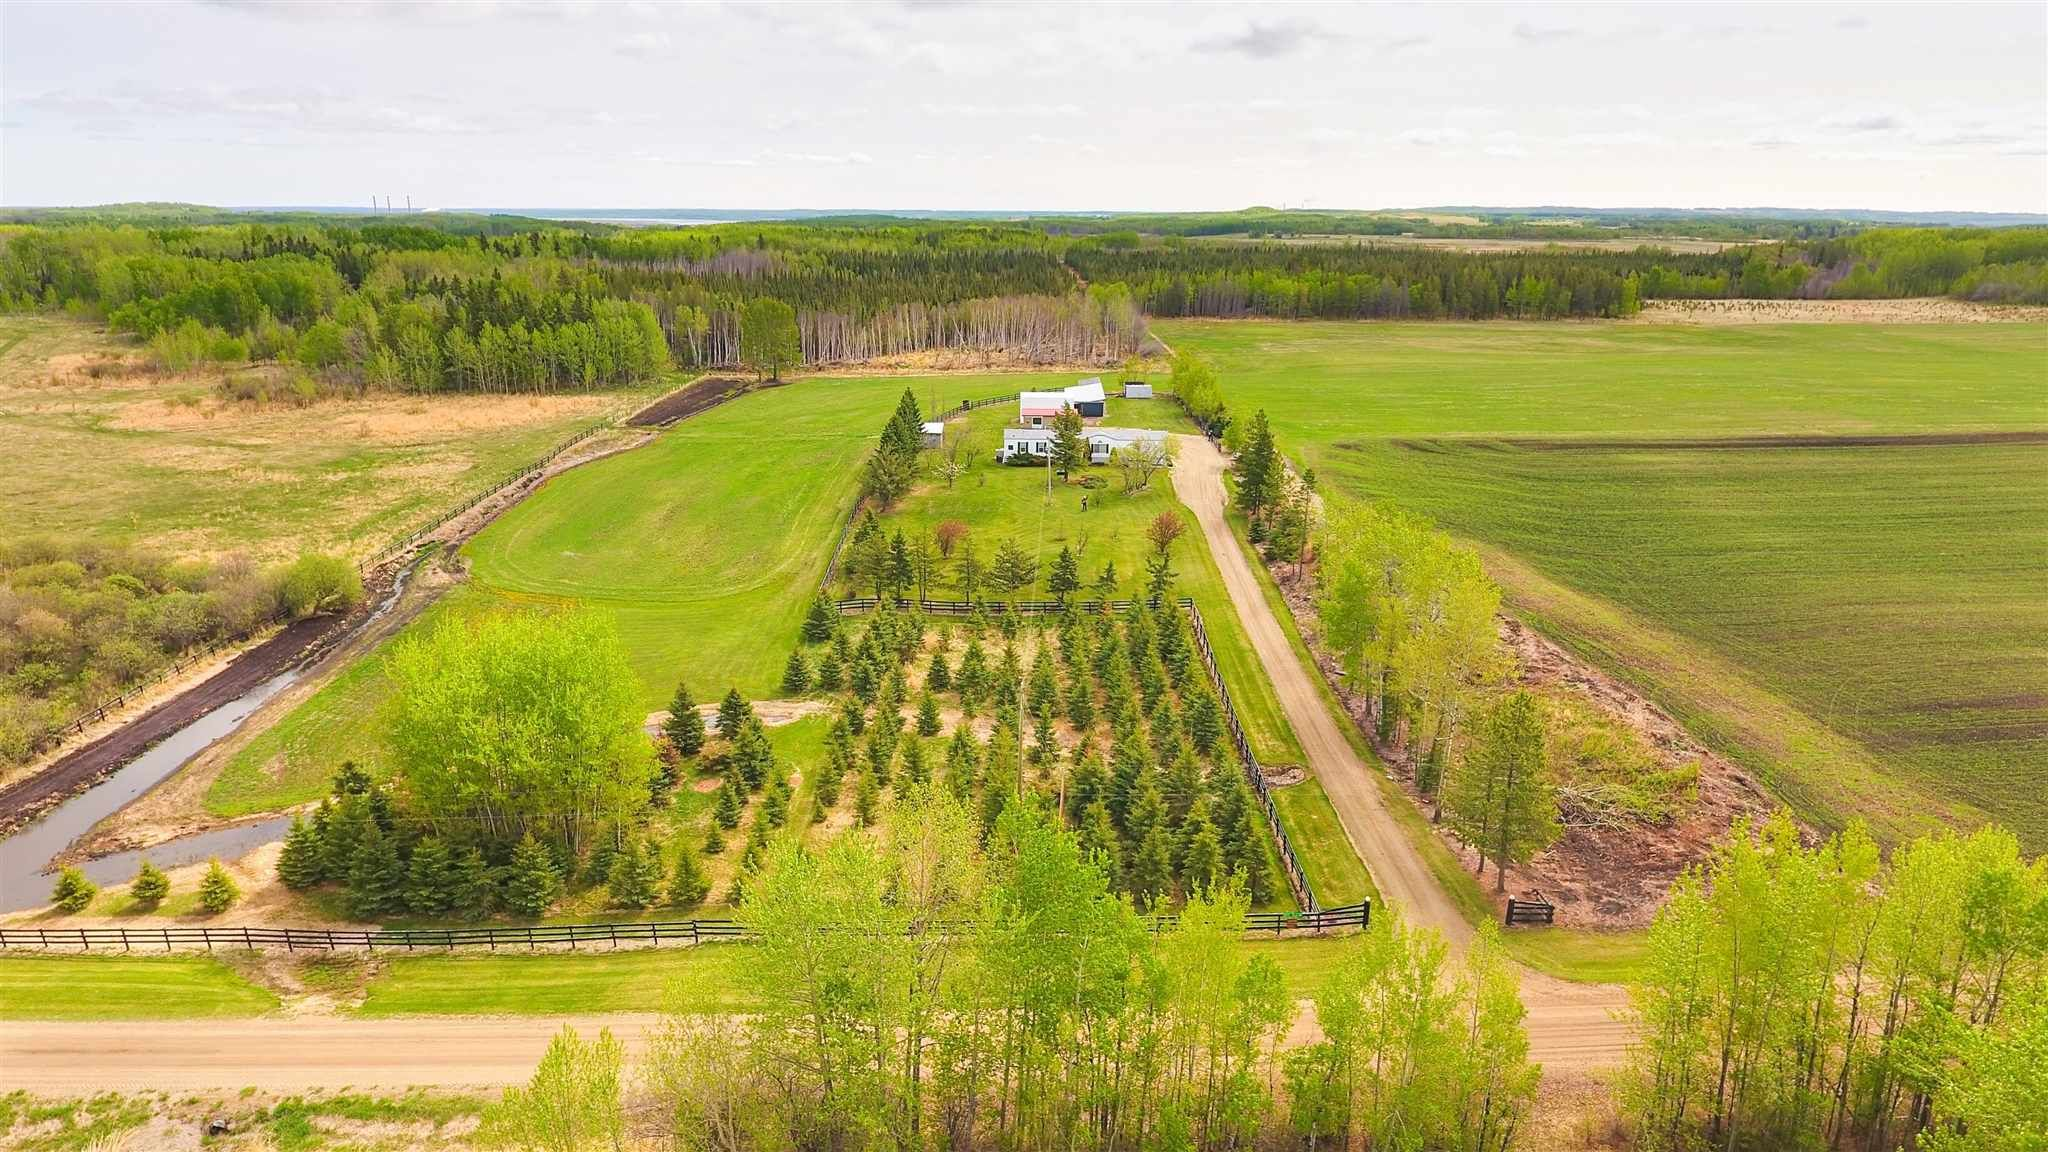 Main Photo: 52117 RGE RD 53: Rural Parkland County House for sale : MLS®# E4246255